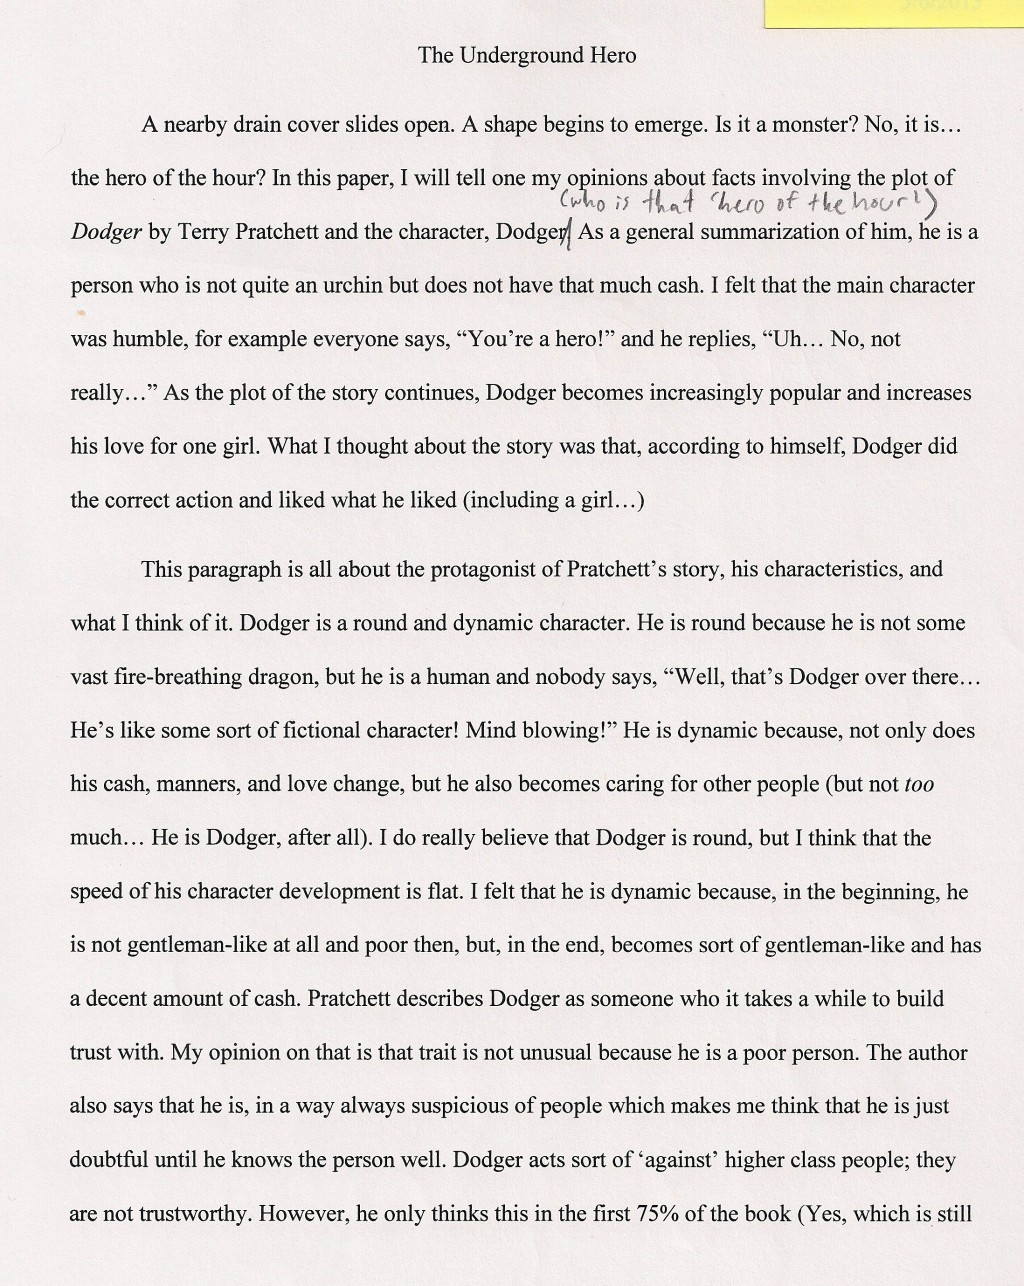 004 Essay Example An About My Hero The Underground Fascinating Heroine Teacher 500 Words A Narrative Large